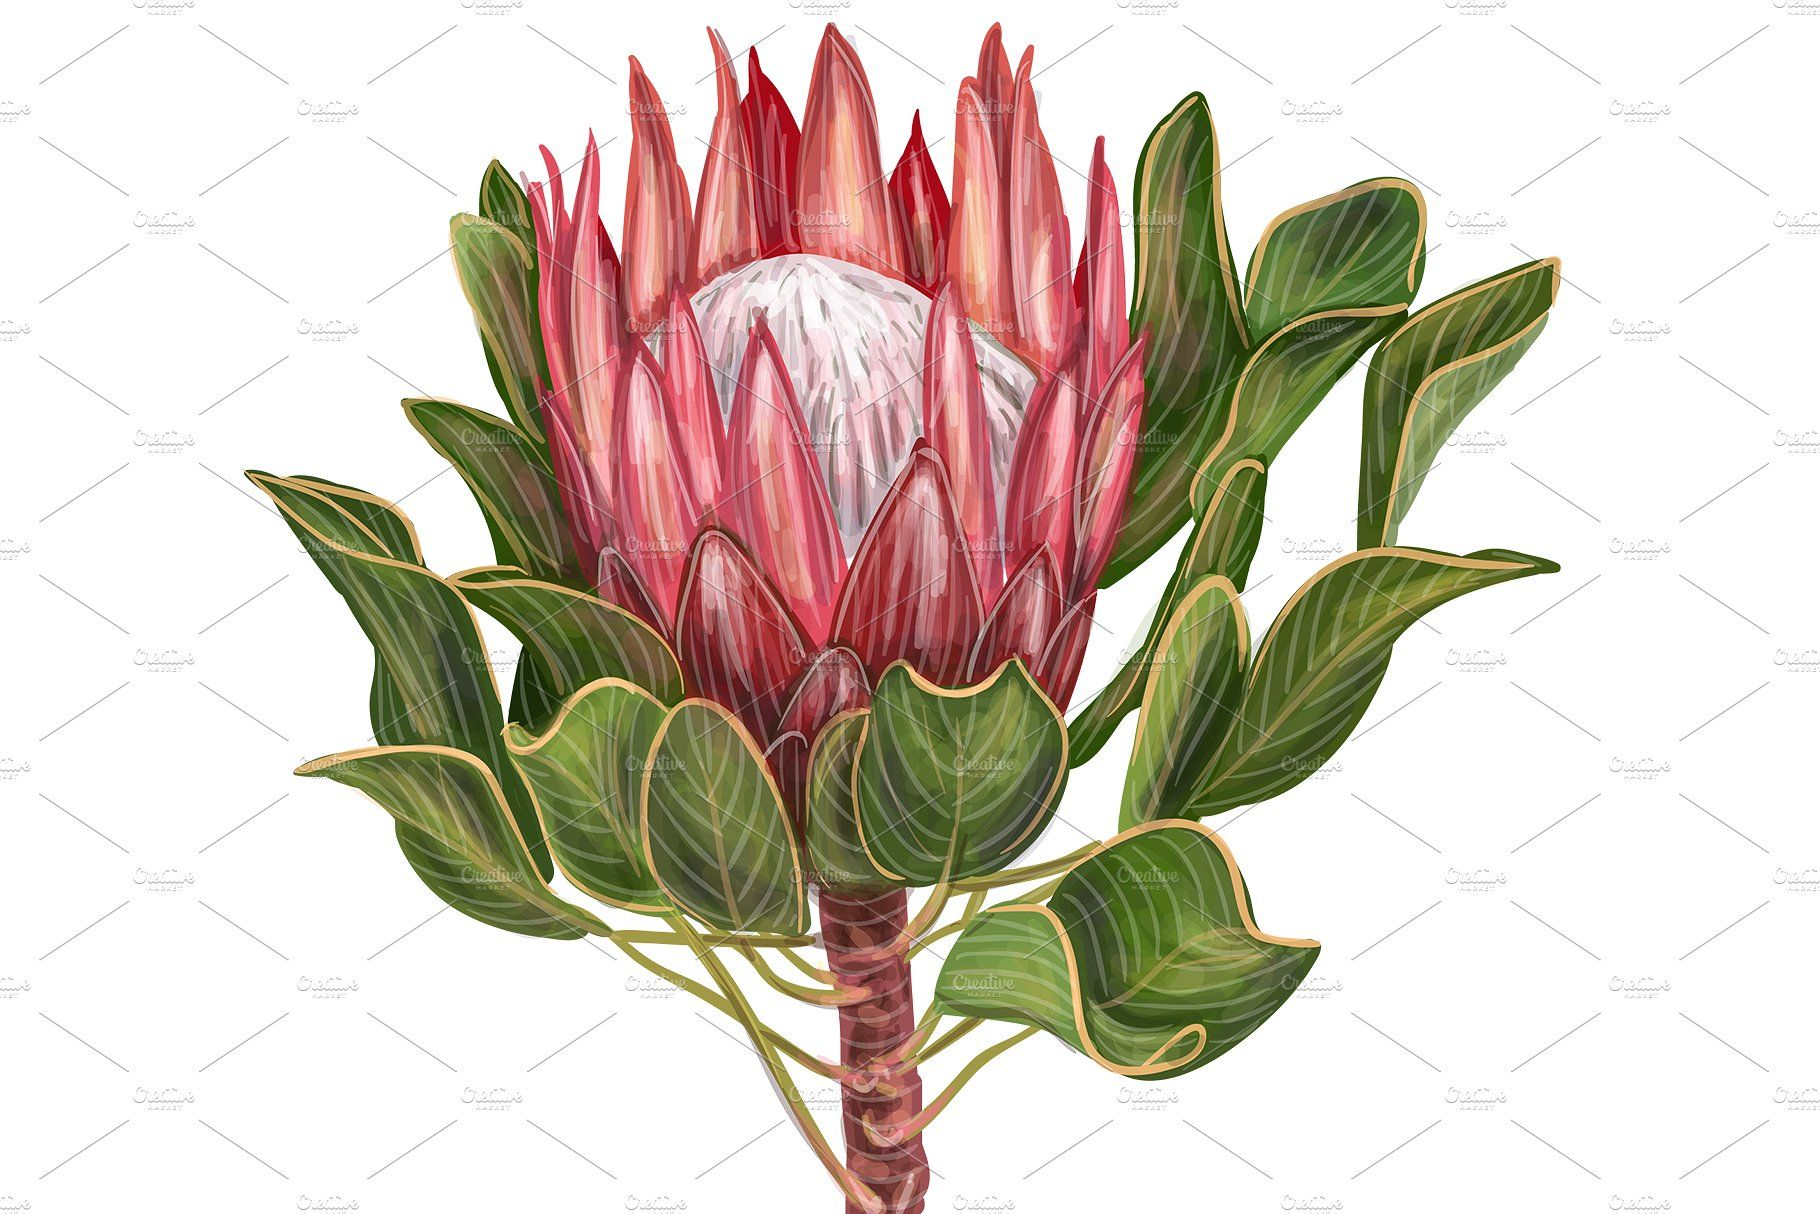 Protea Flowers Awesome Blossom How To Draw Hands Birthday Cards For Women Birthday Card Drawing